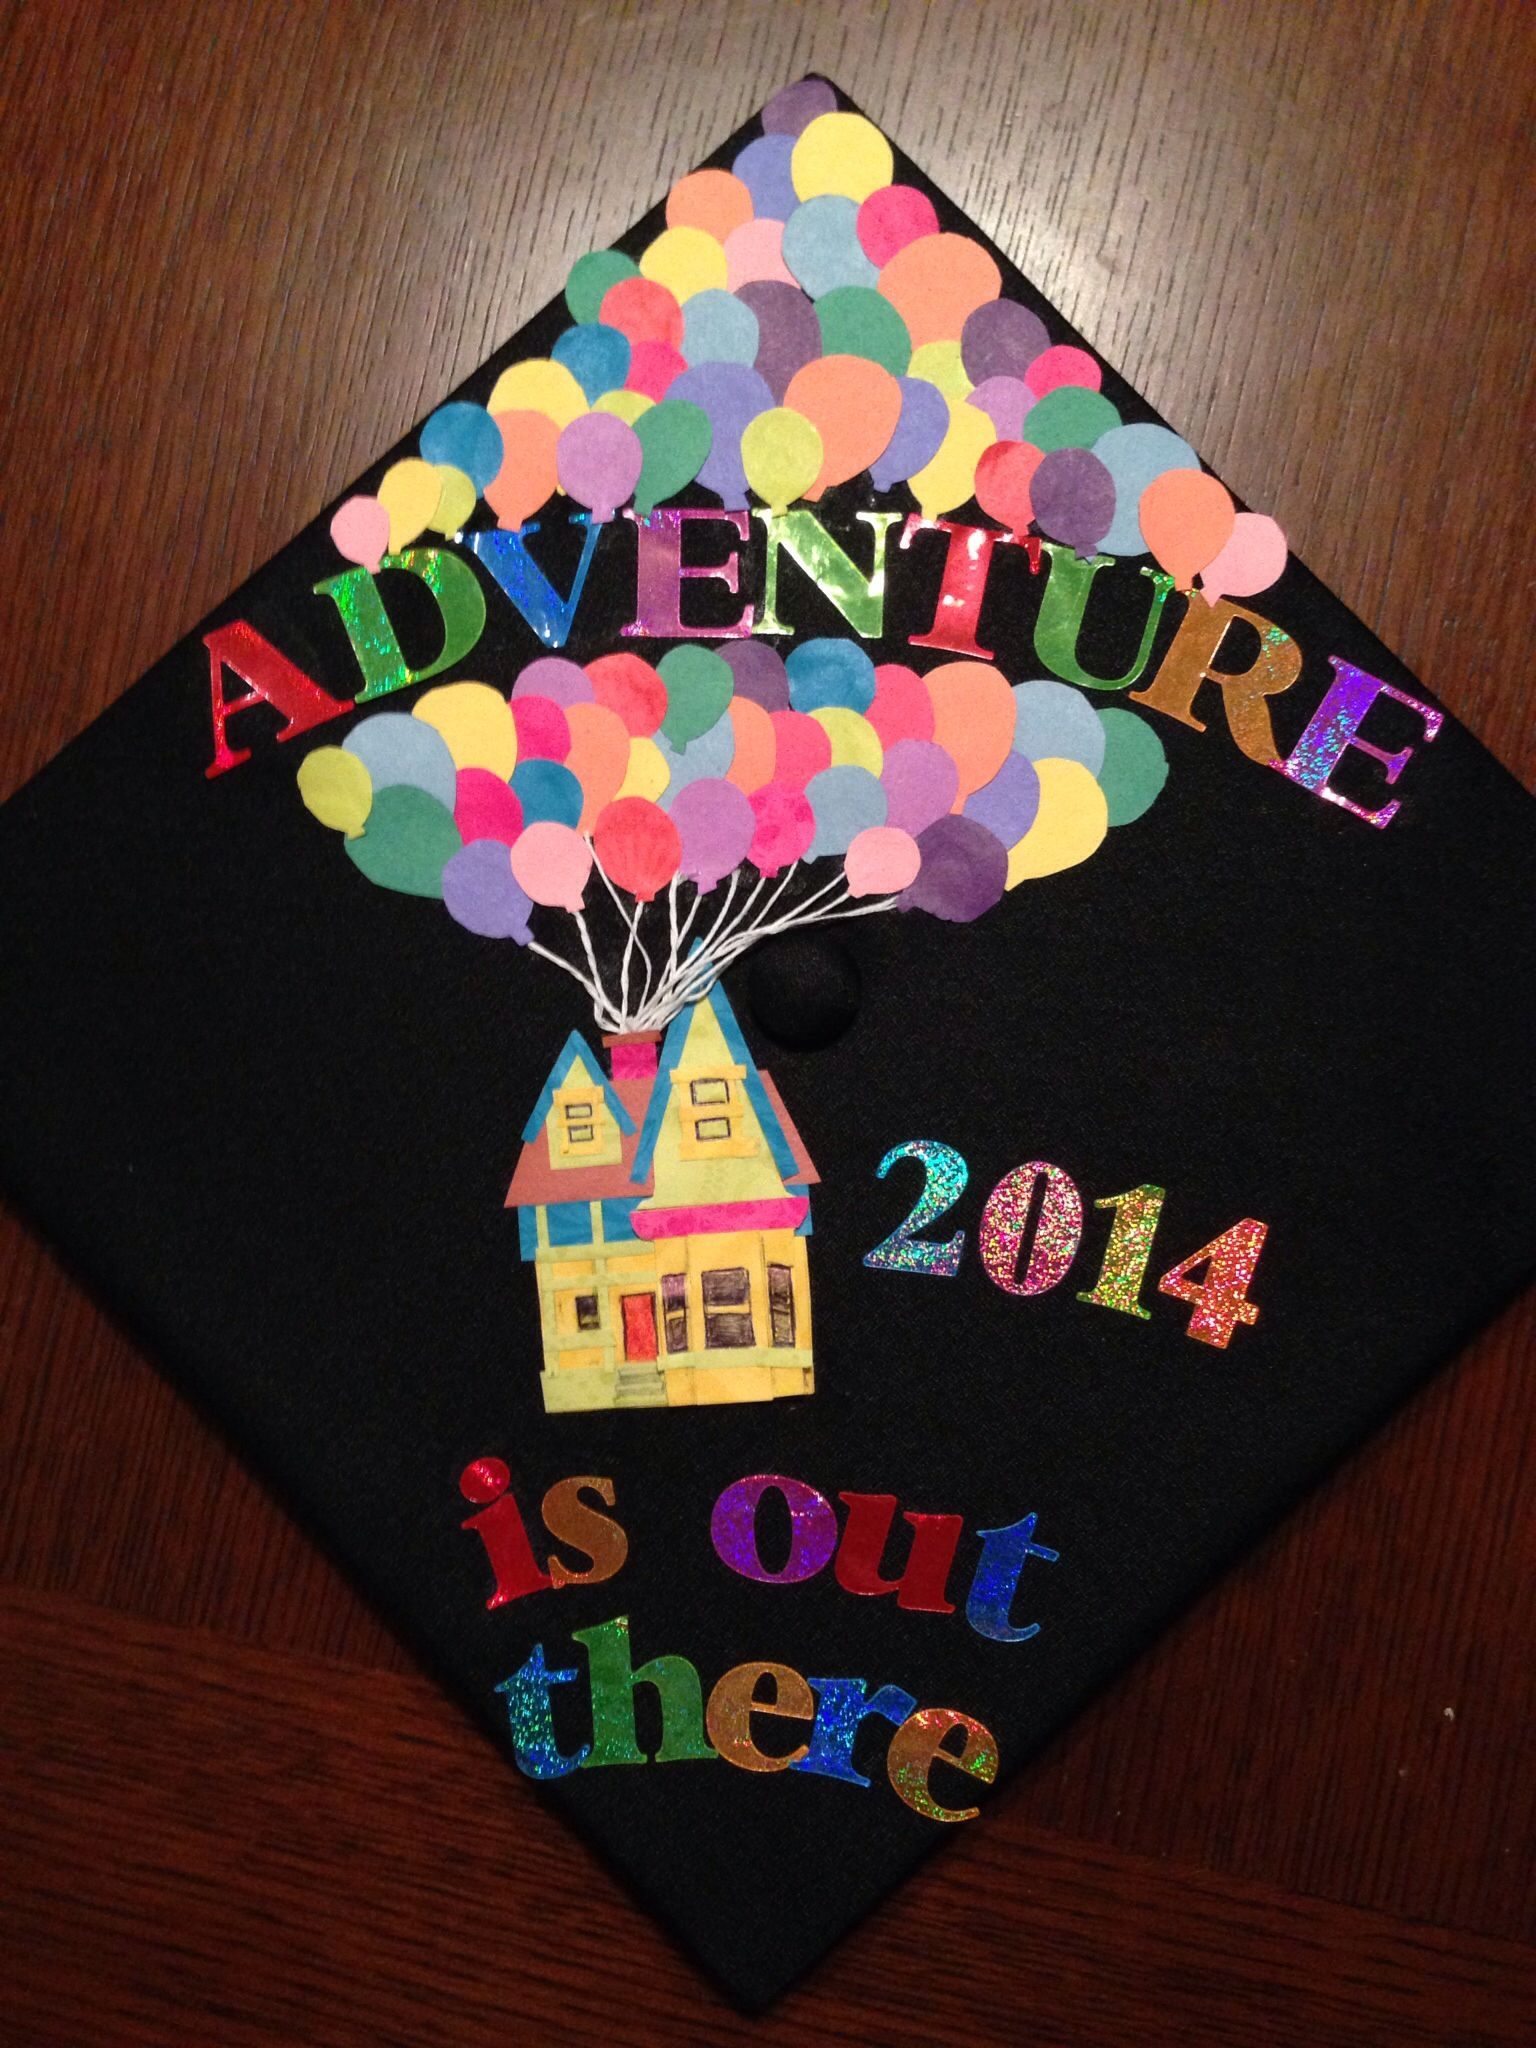 Decorating graduation cap ideas for teachers - Graduation Cap Graduate College Up